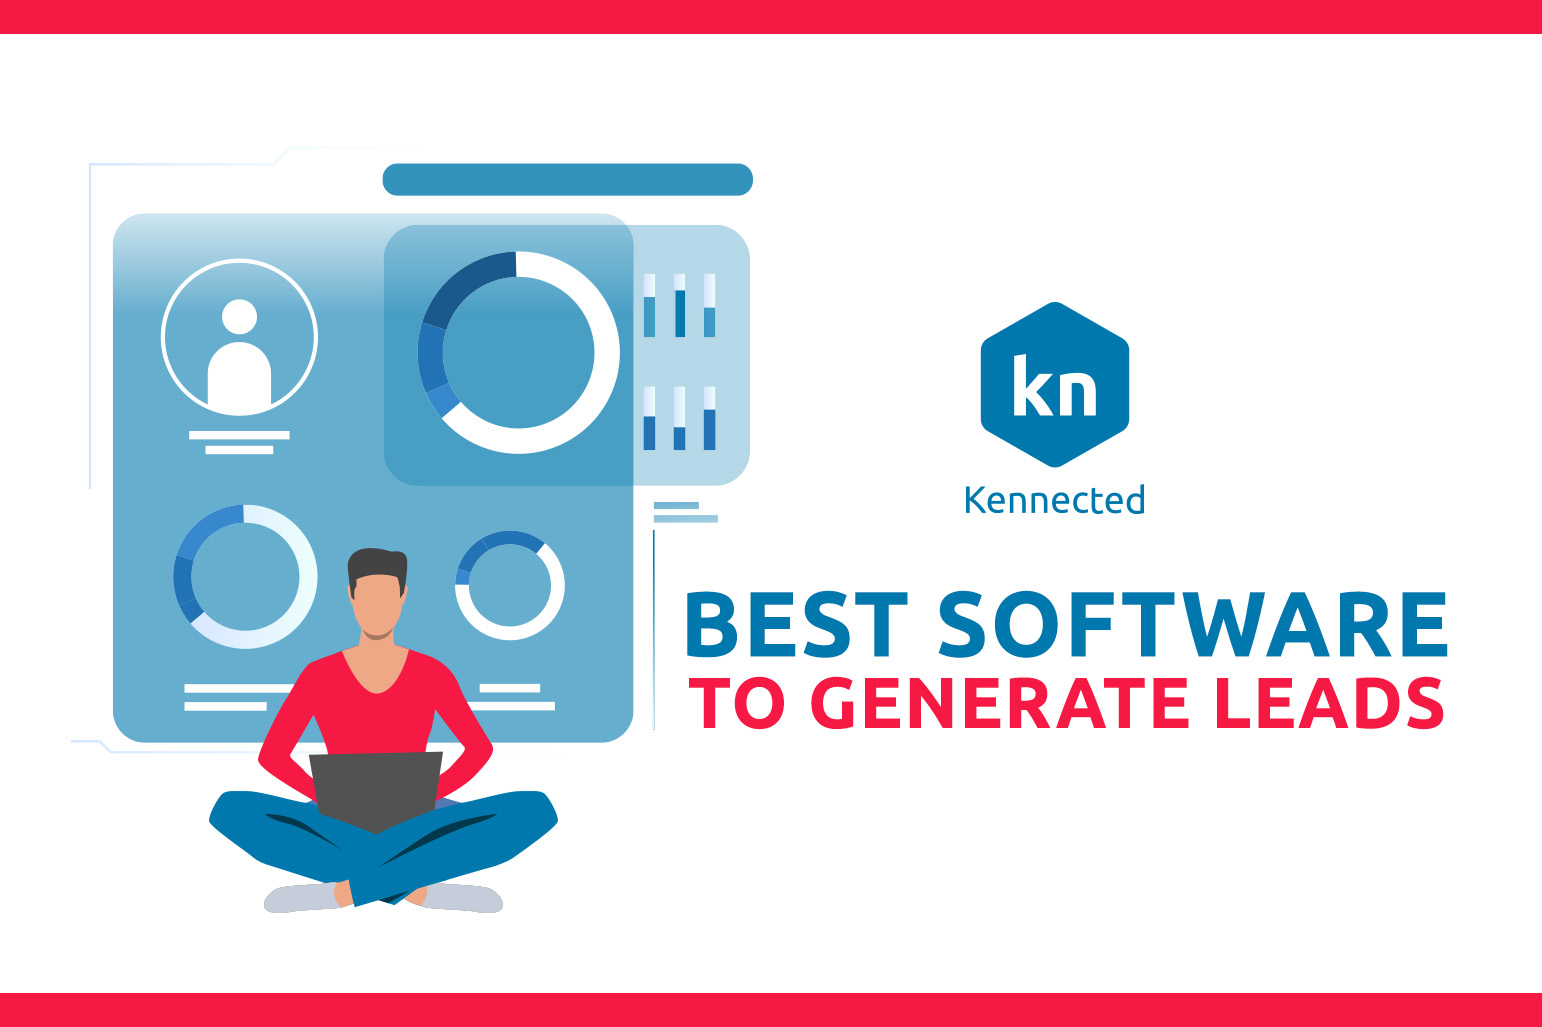 Best Software to Generate Leads